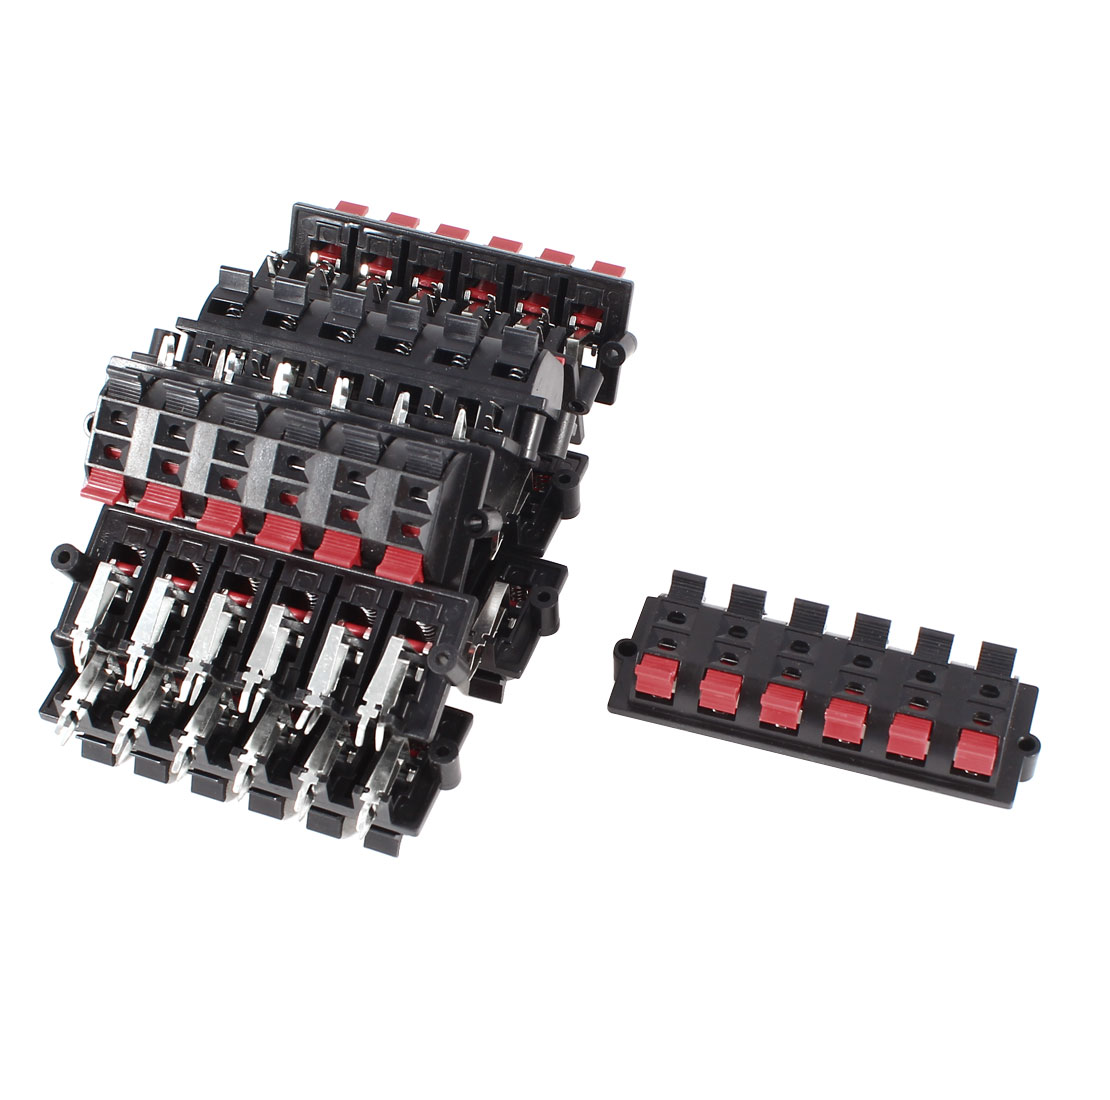 Plastic Casing 12 Pin 12 Position Speaker Terminal Board Red Black 10 Pcs